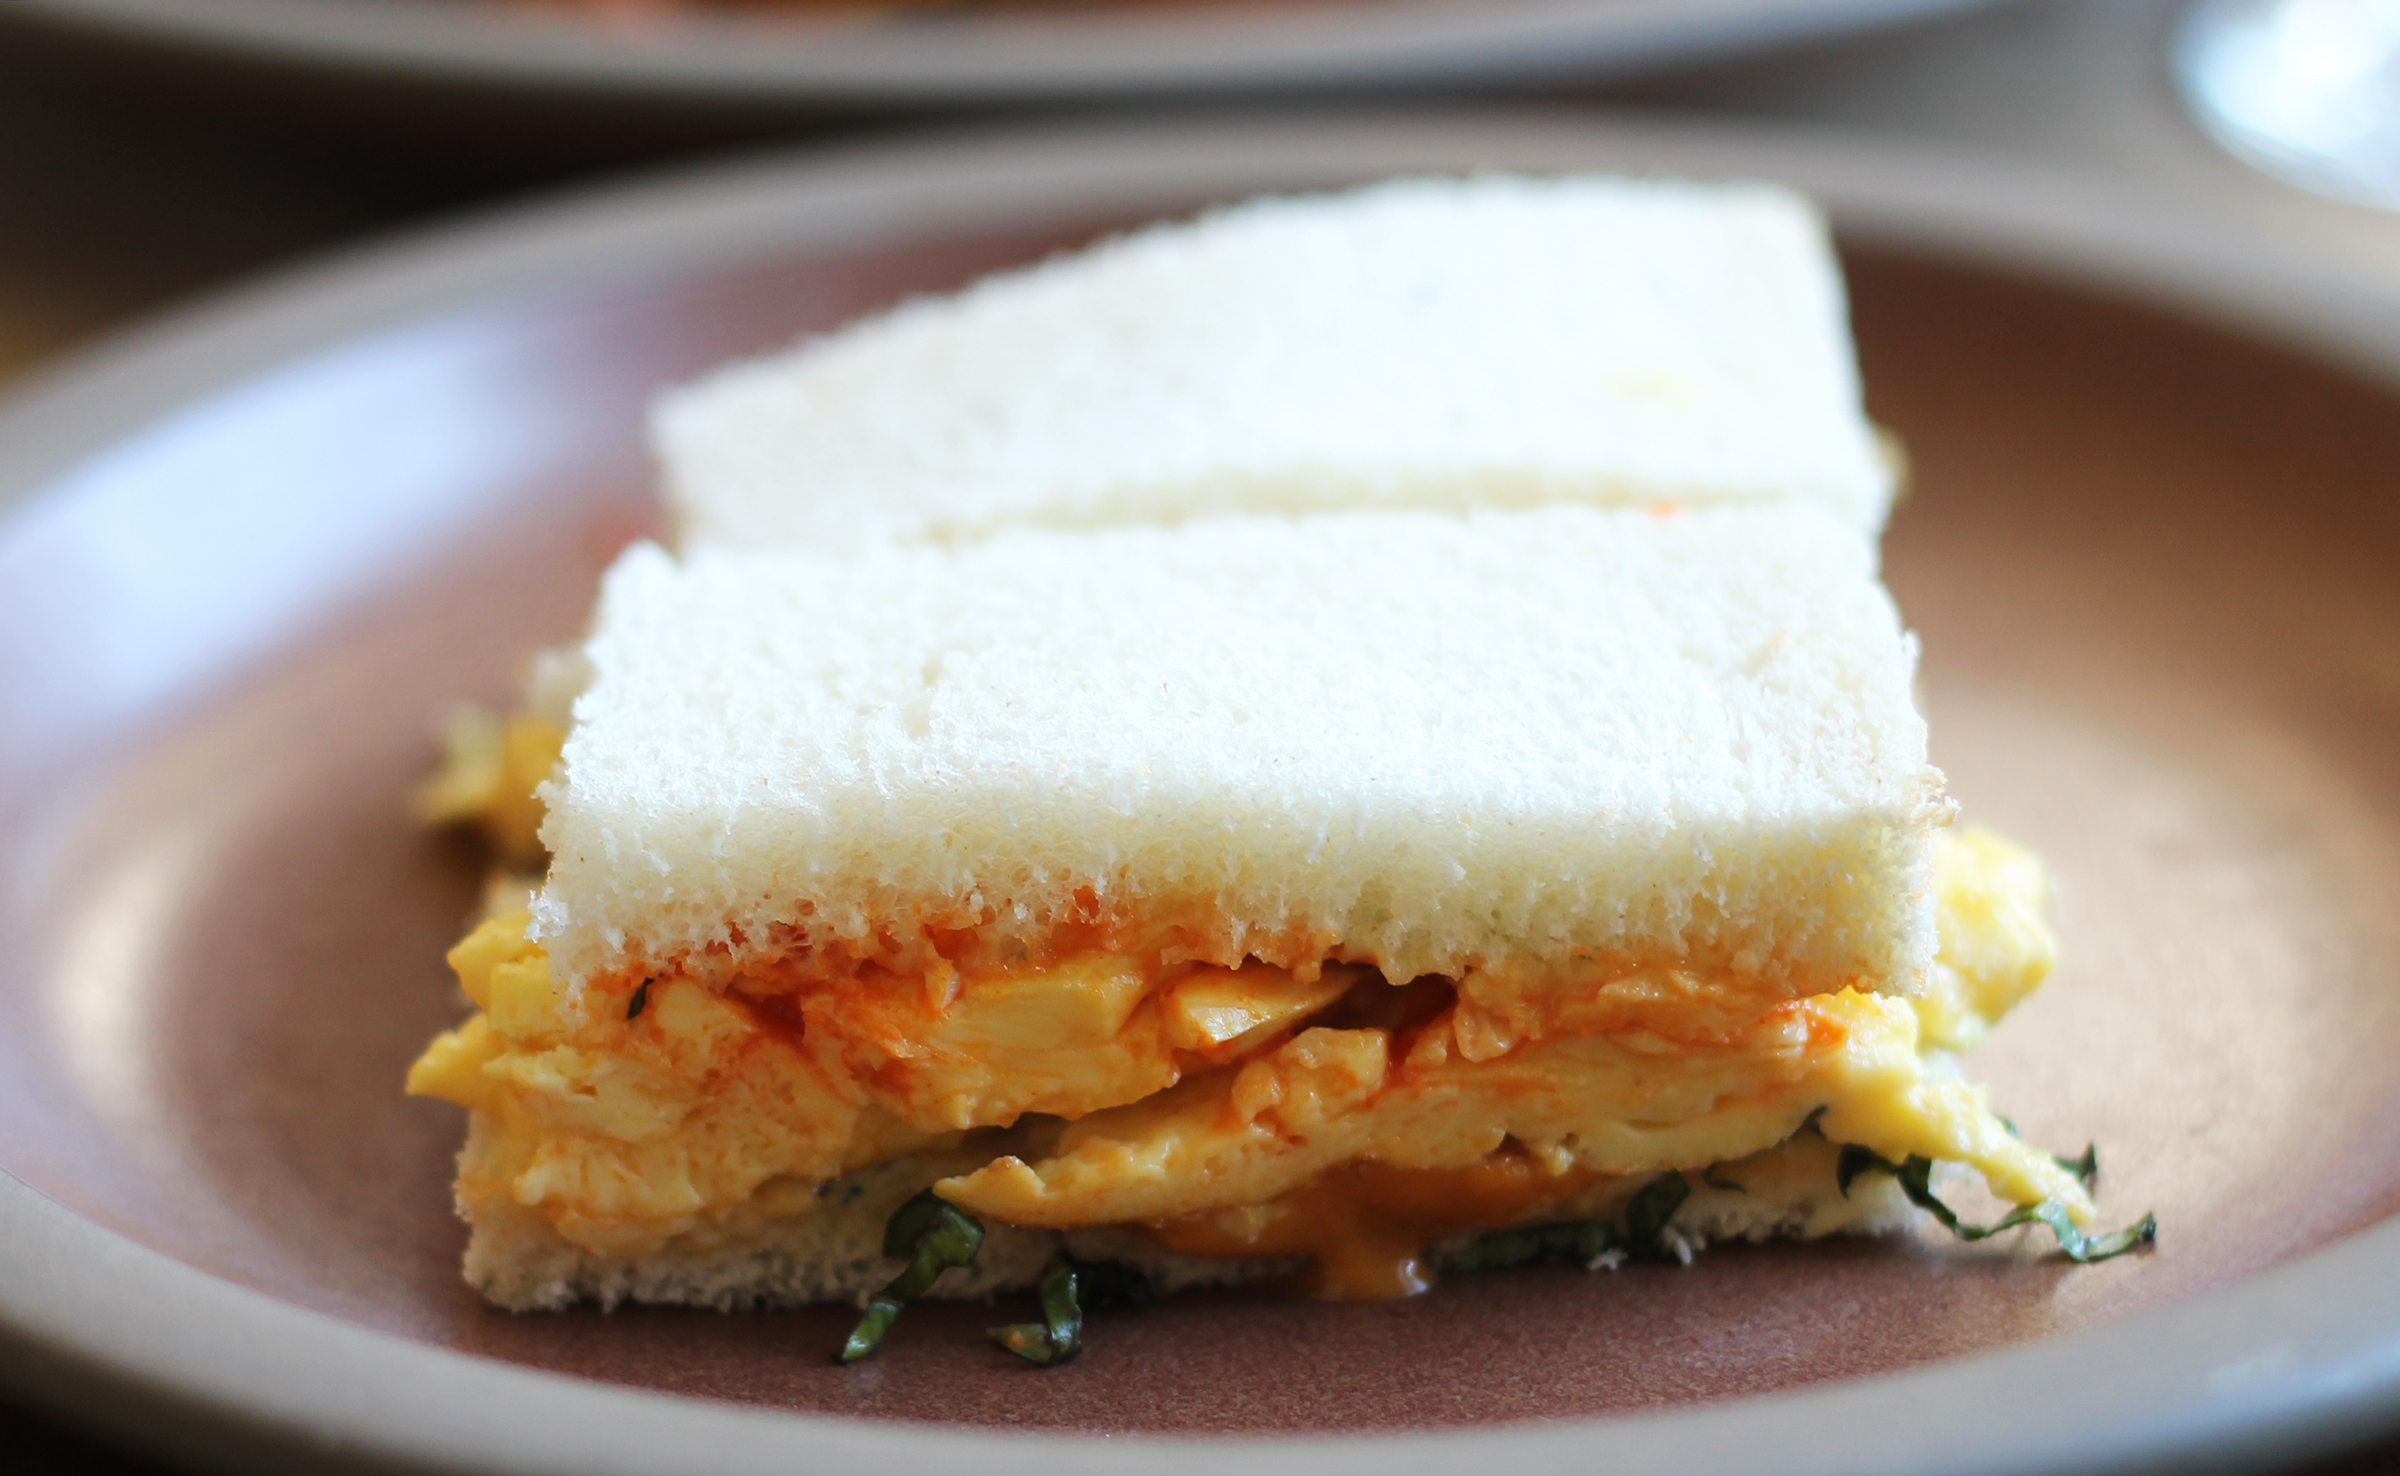 Scrambled egg and sea urchin panini, basil, chilies